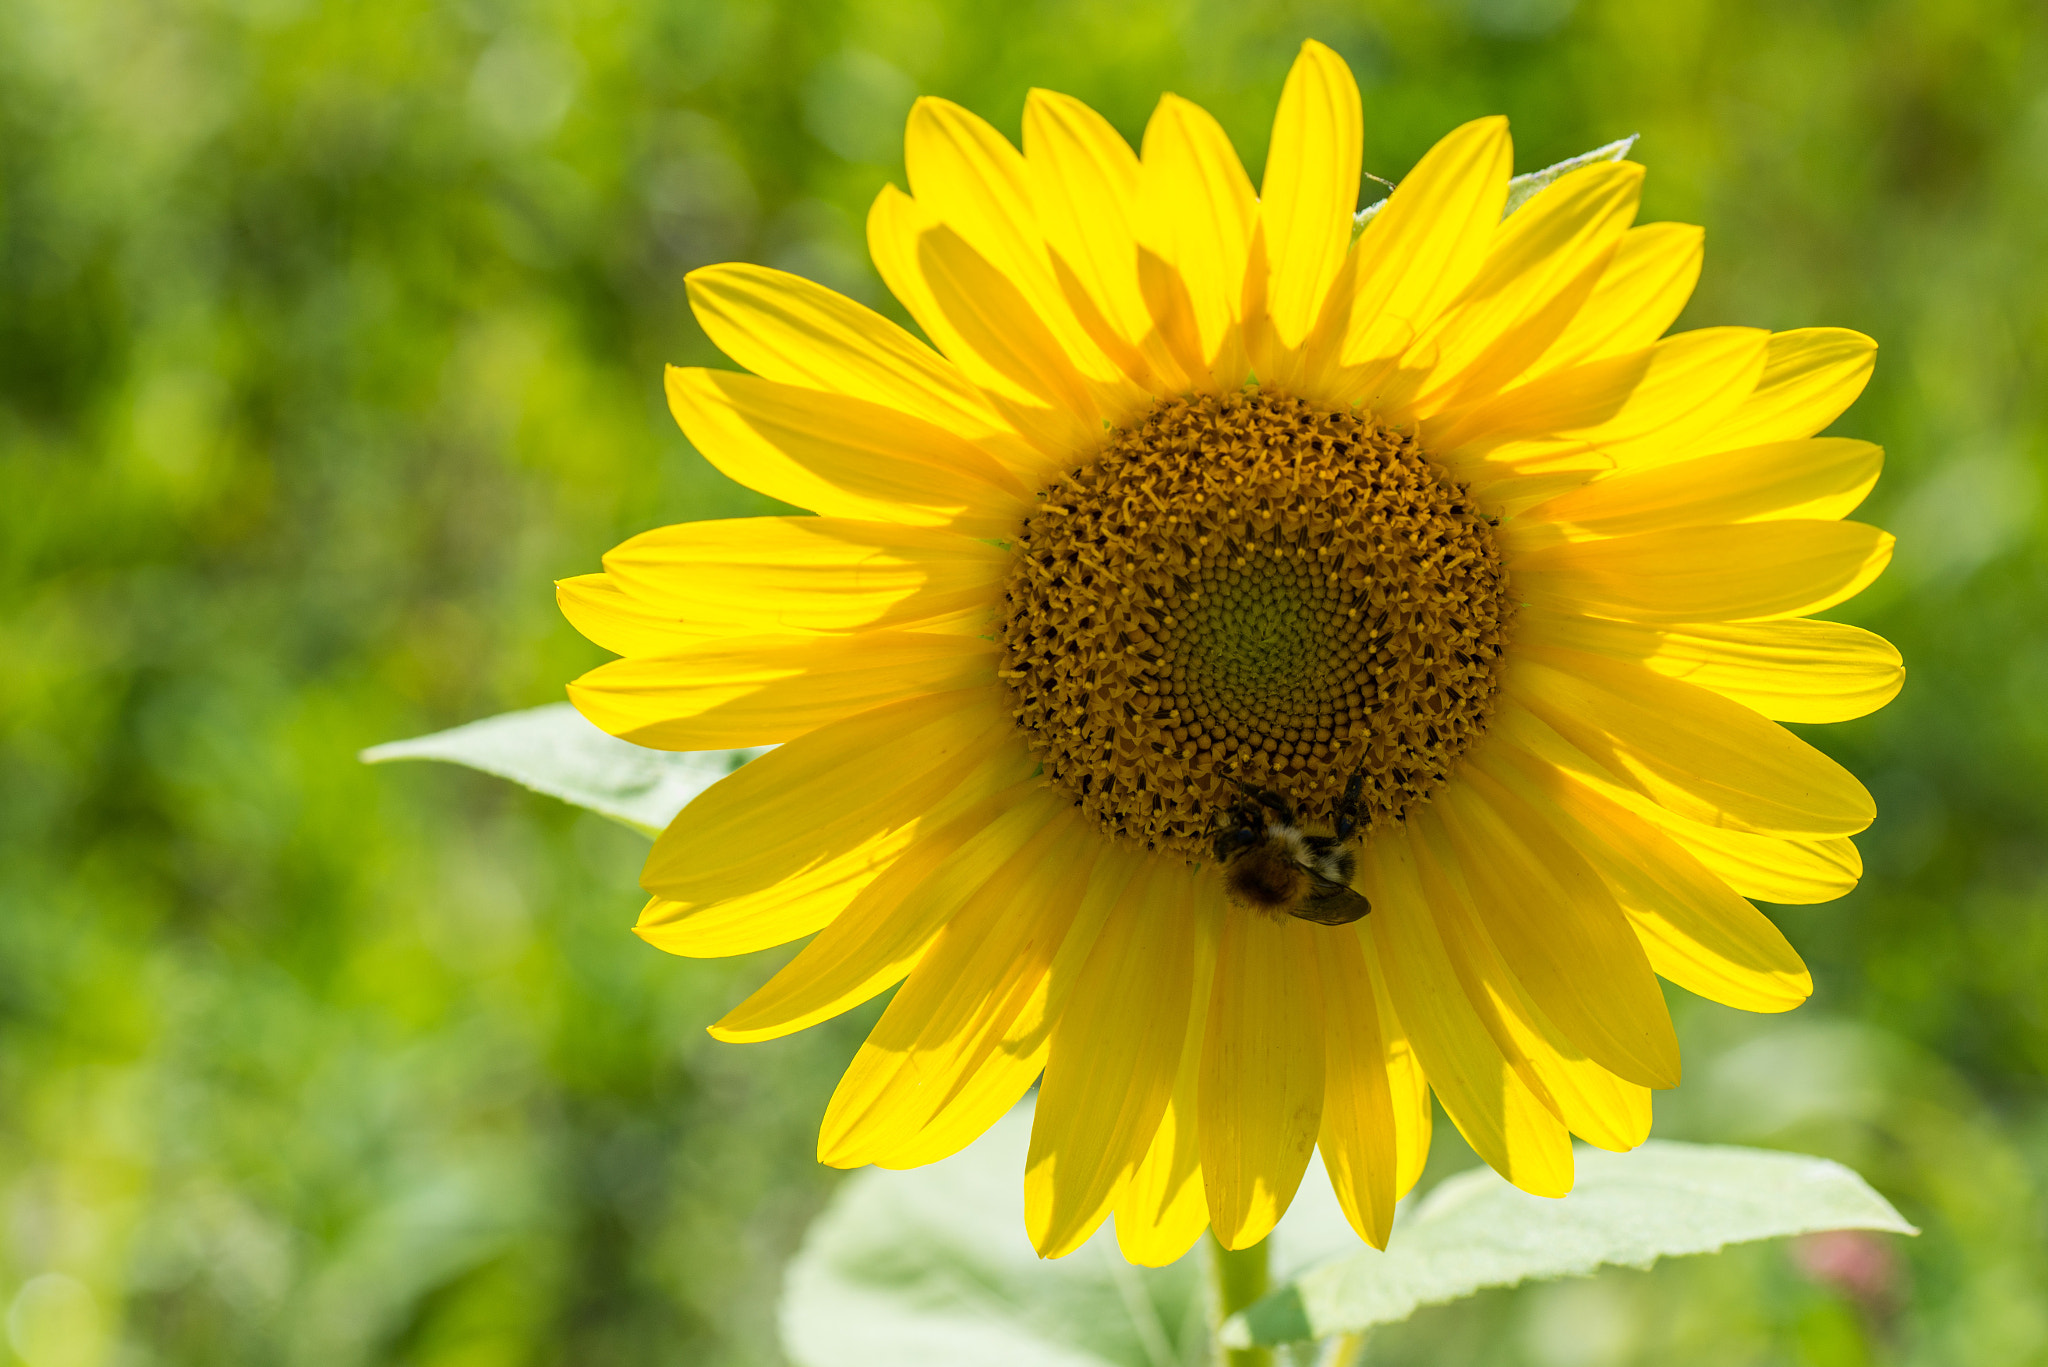 Photograph field flowers (04) - bumble-bee on sunflower by Vlado Ferencic on 500px